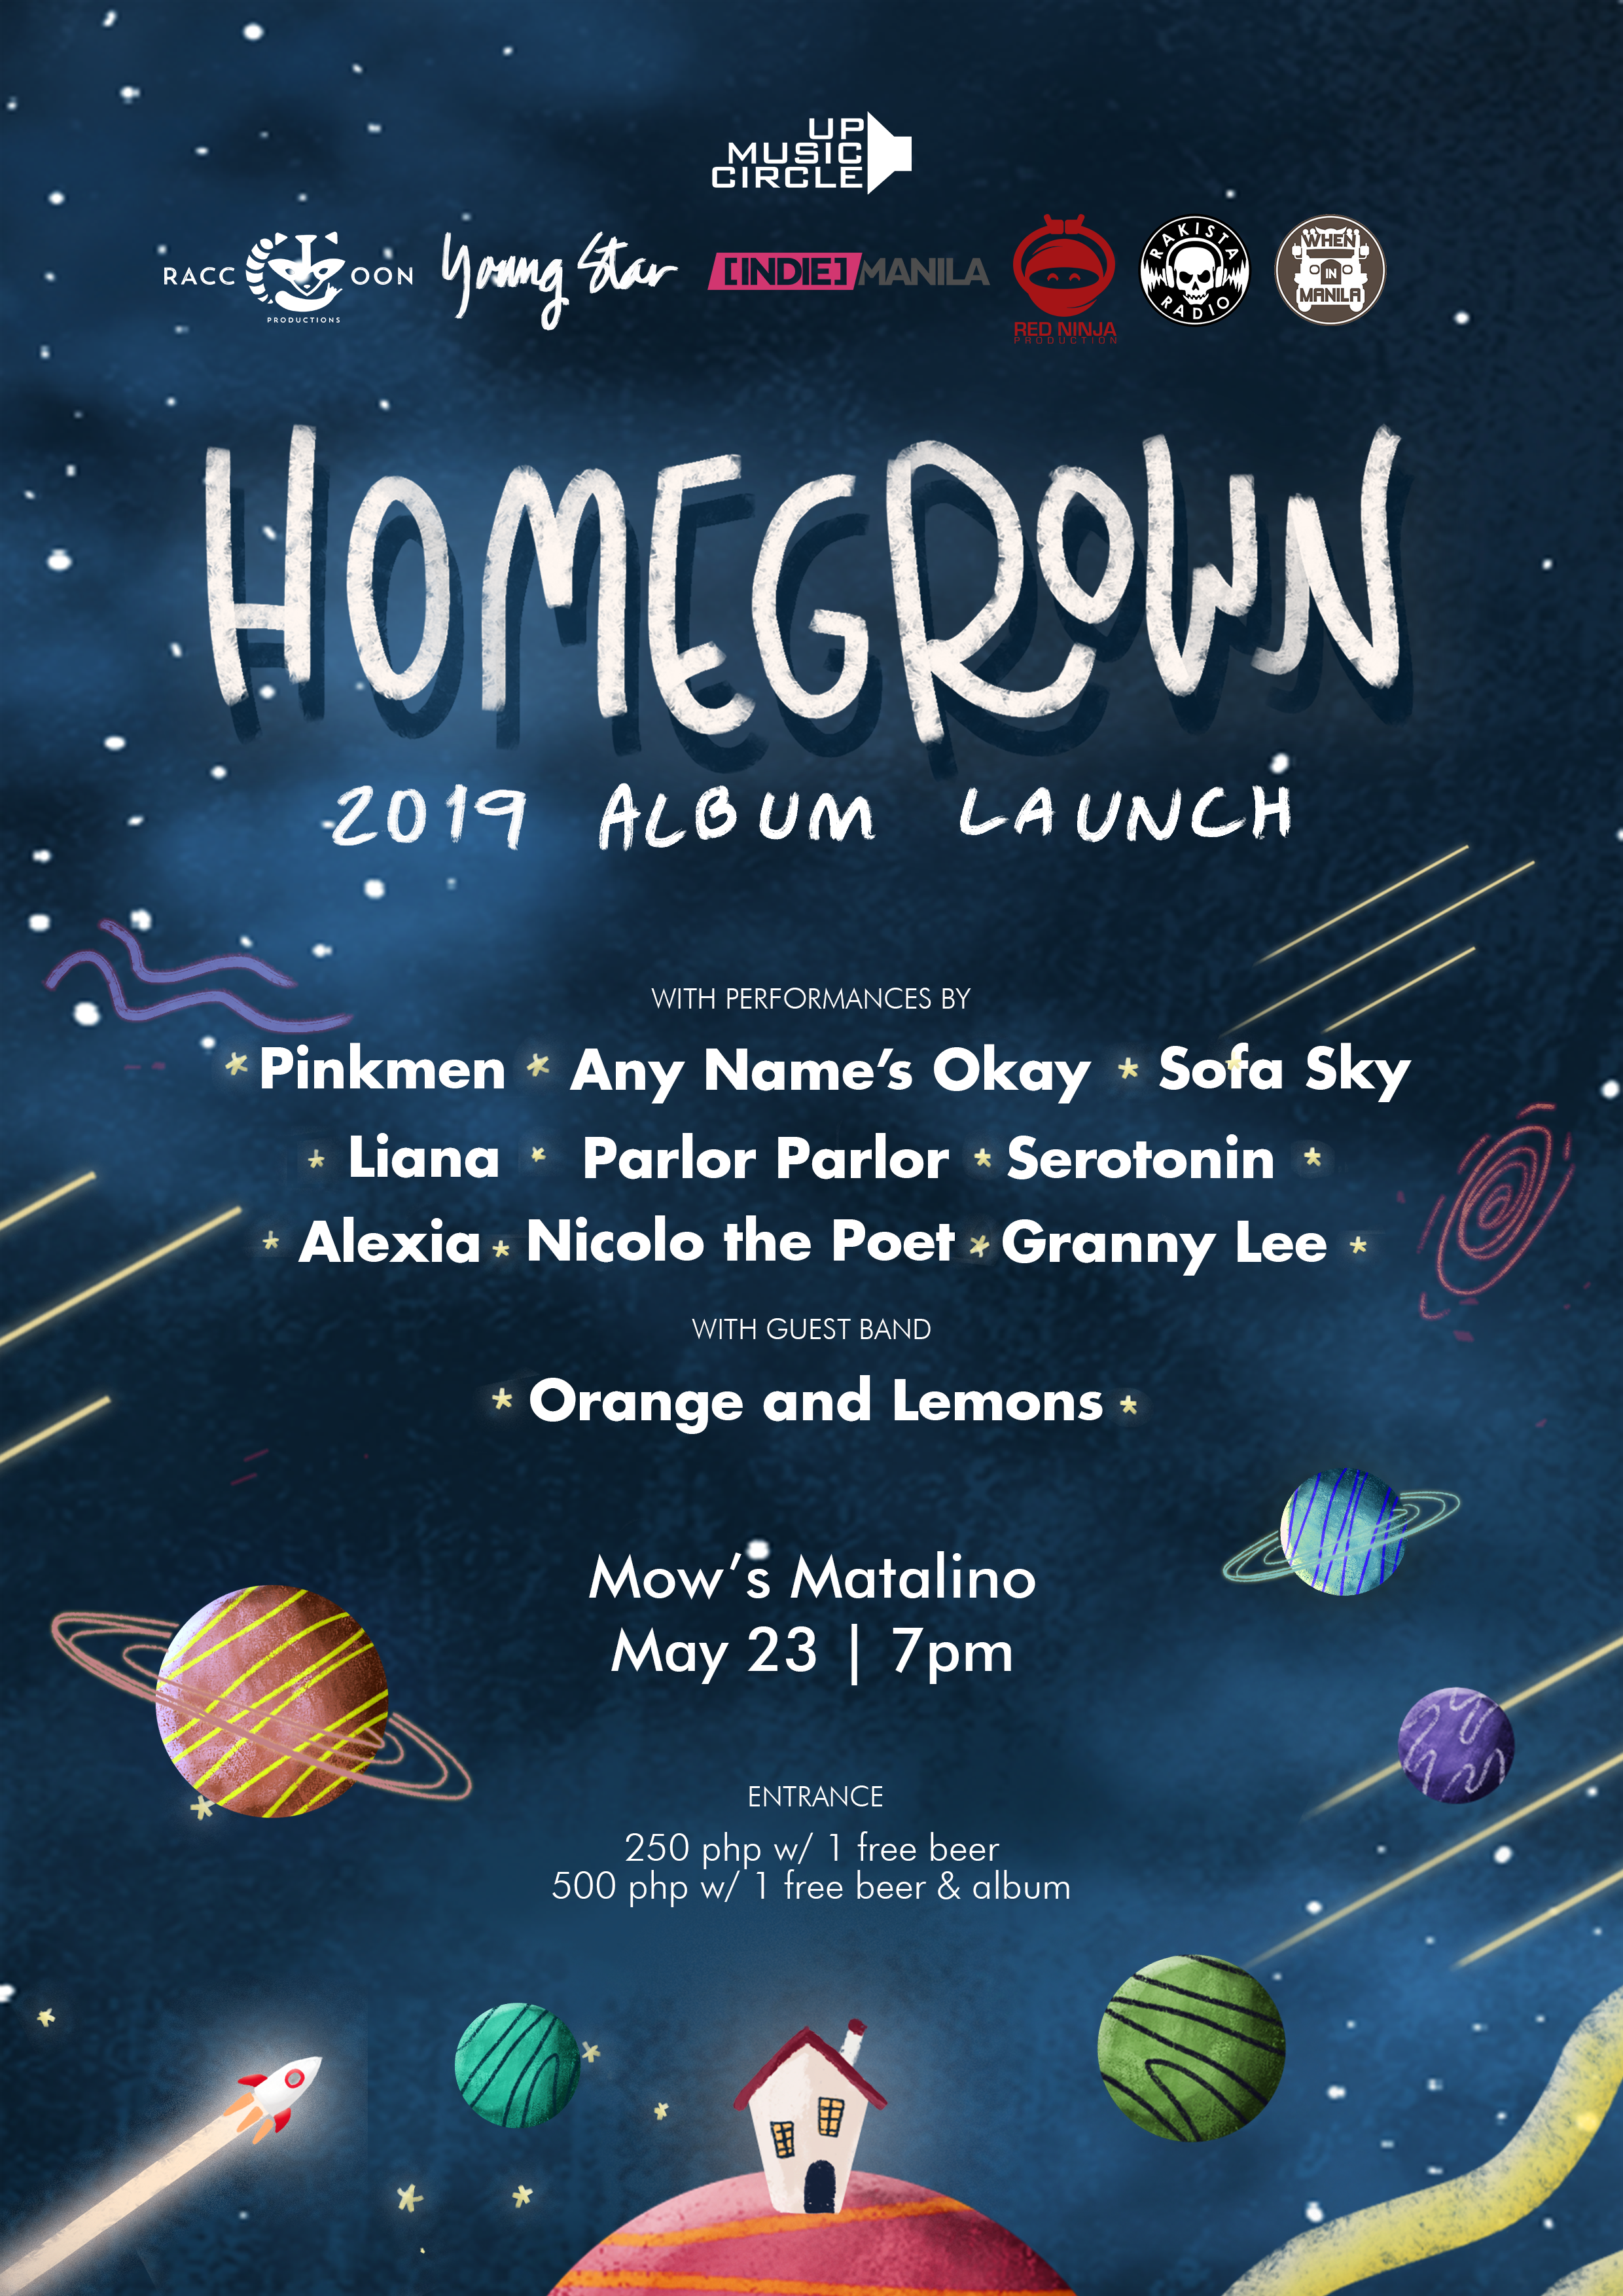 The UP Music Circle 'Homegrown 2019' Album Launch